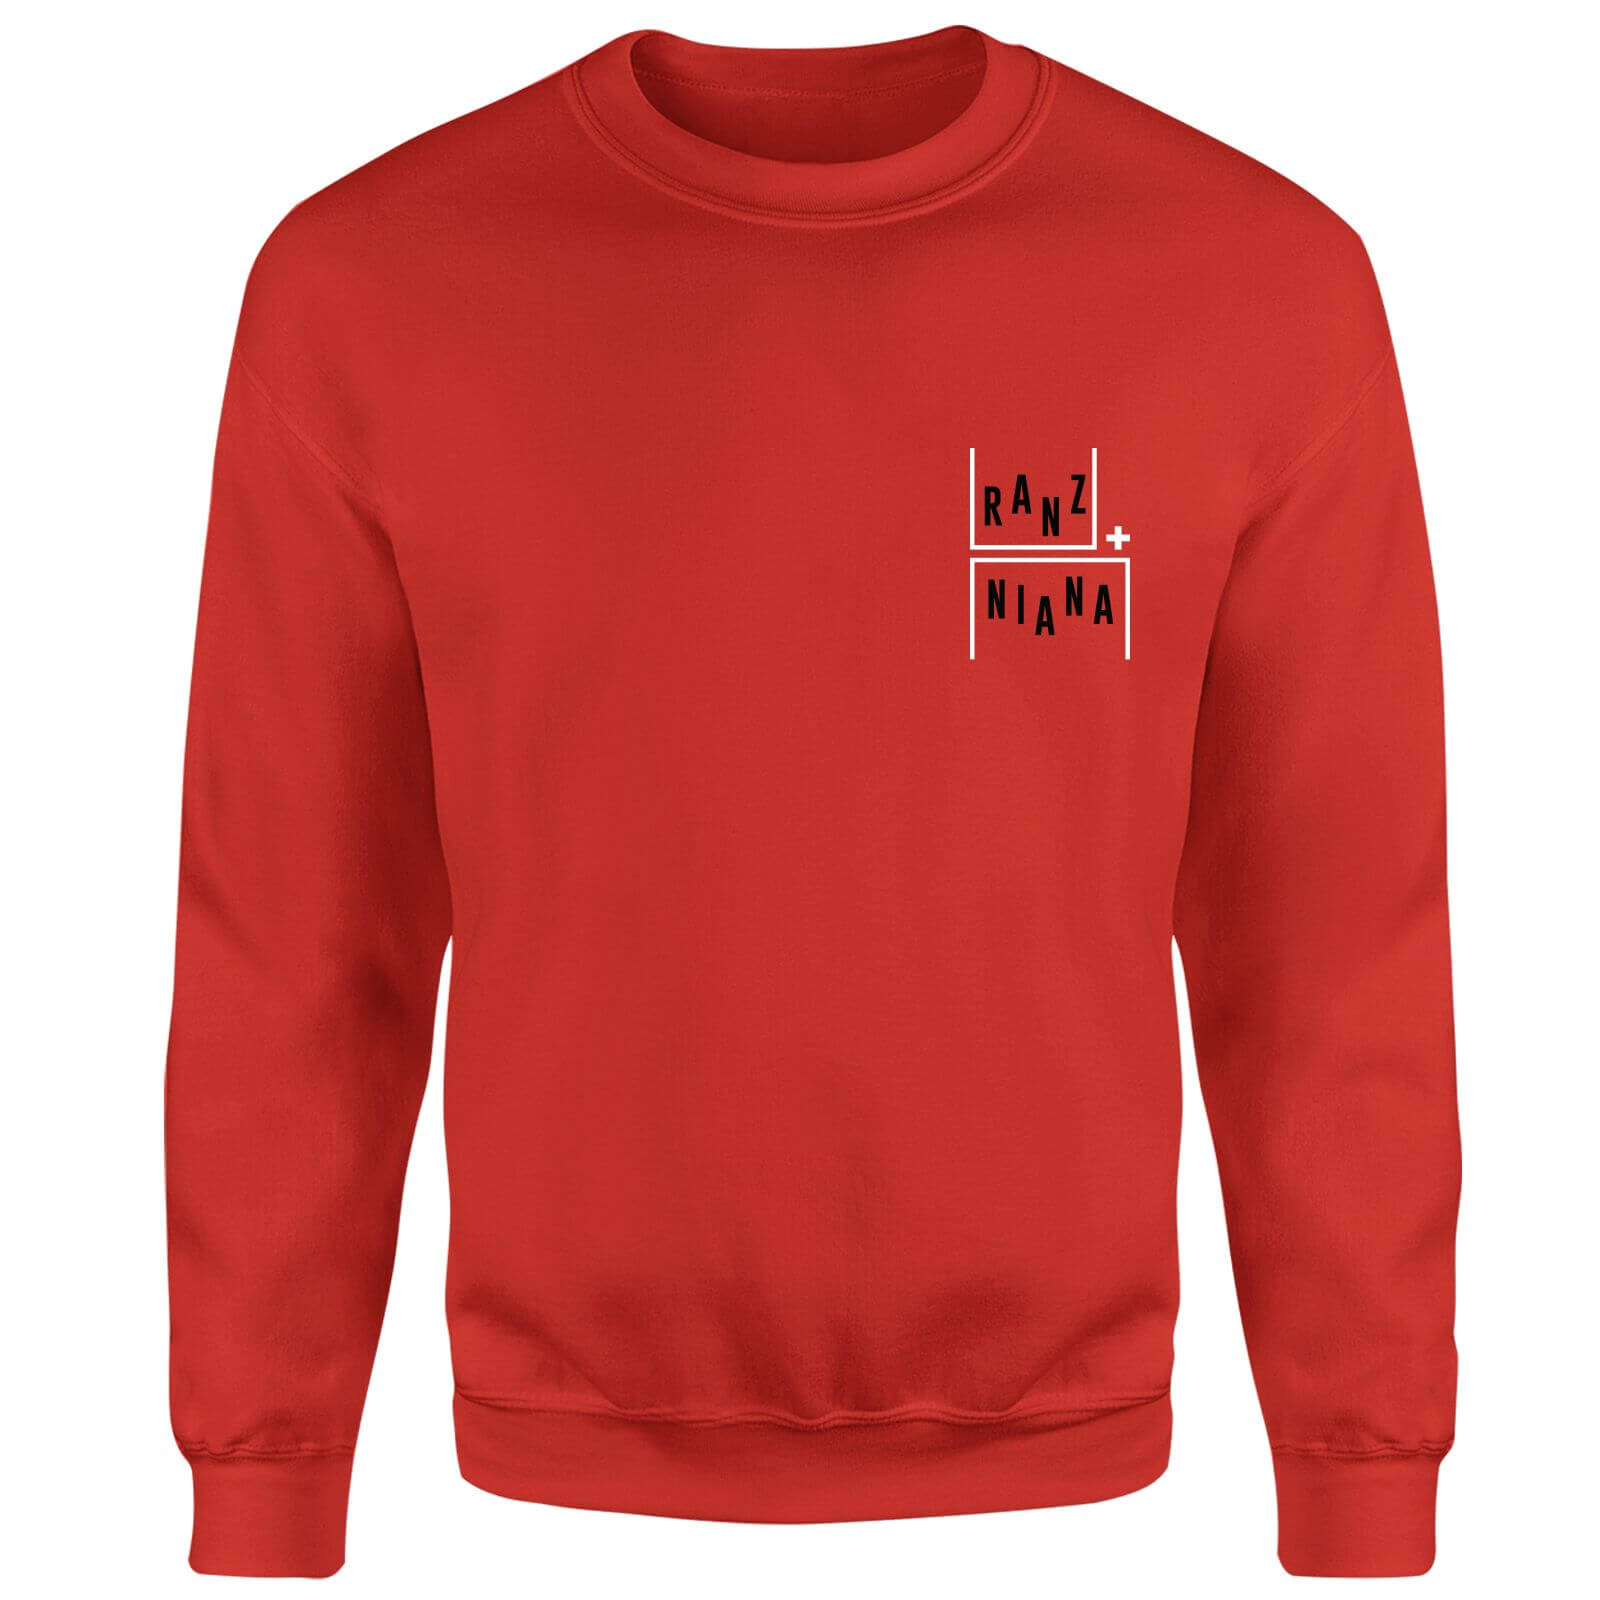 Ranz + Niana Gravity Movement Pocket Sweatshirt - Red